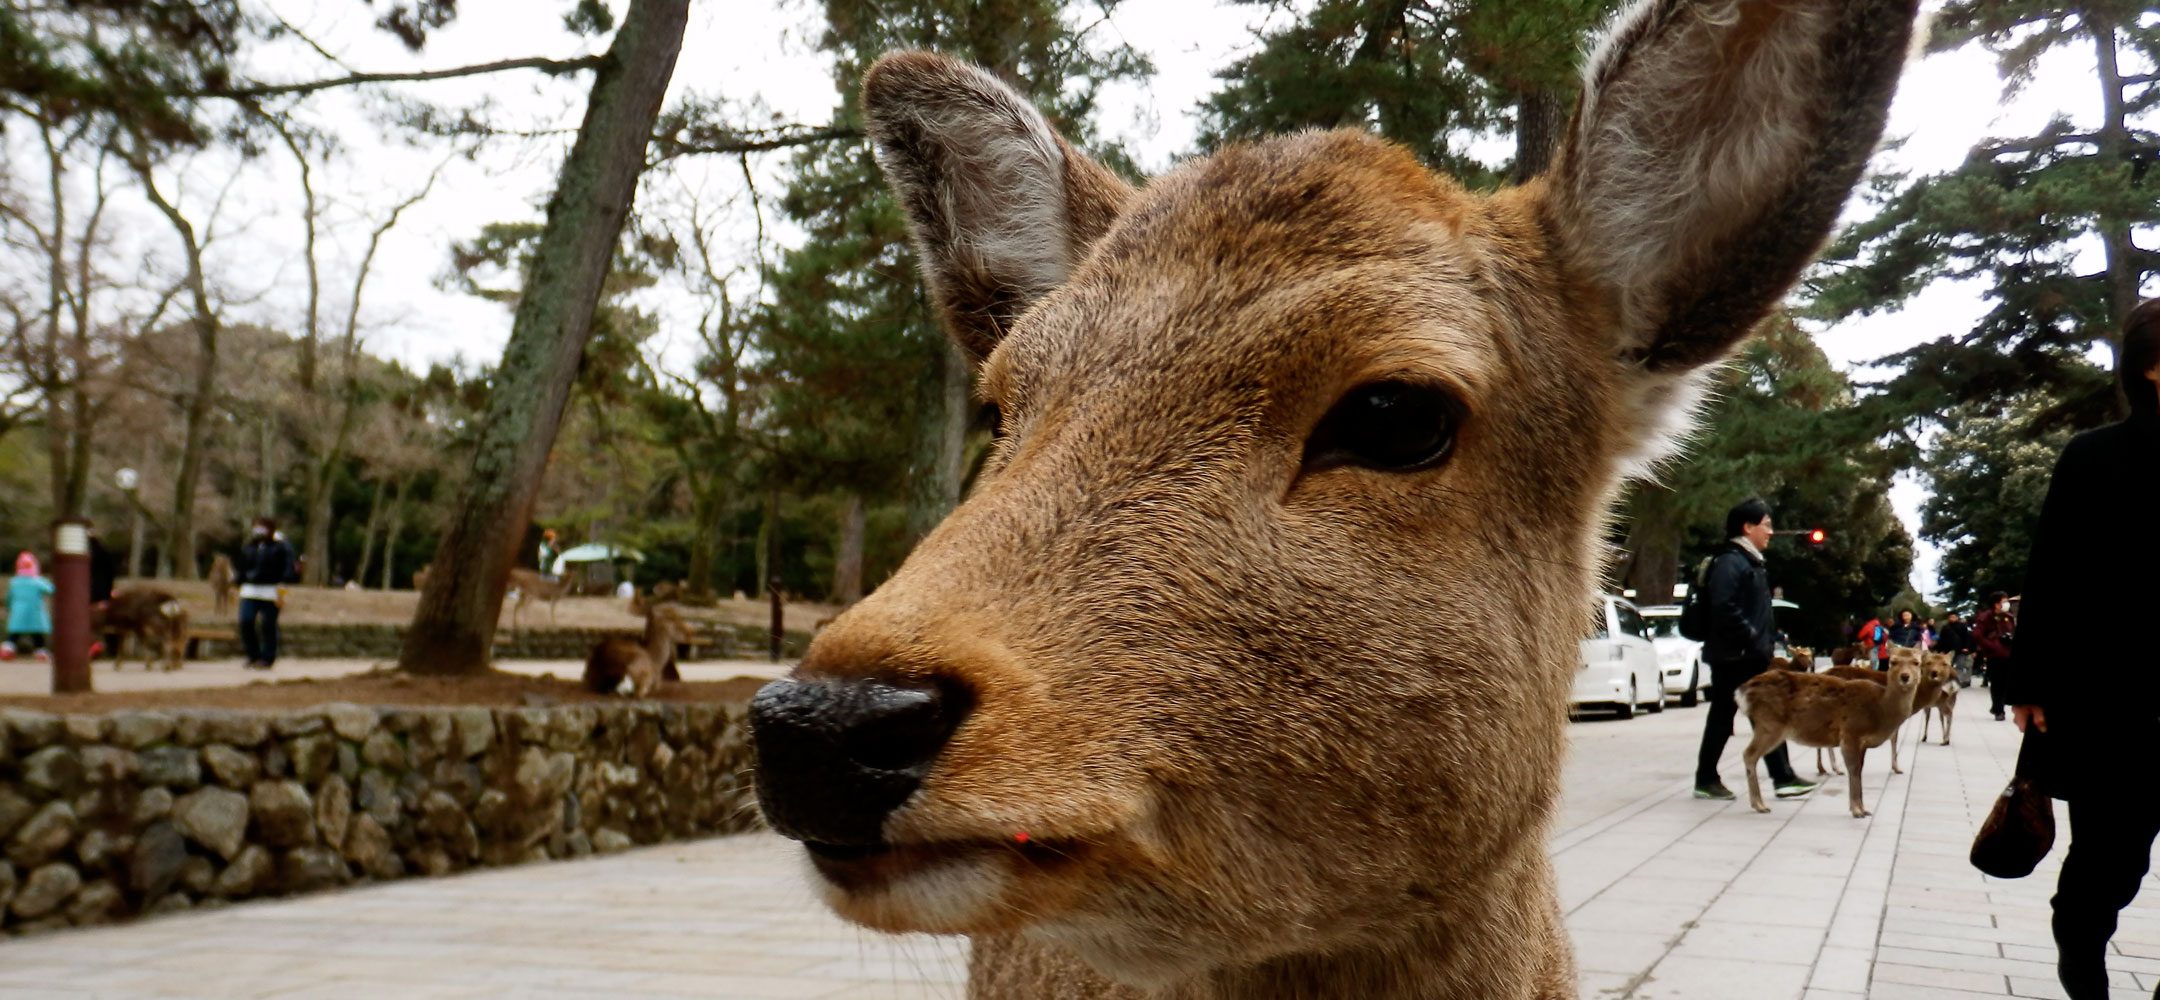 Optional day trip to Nara